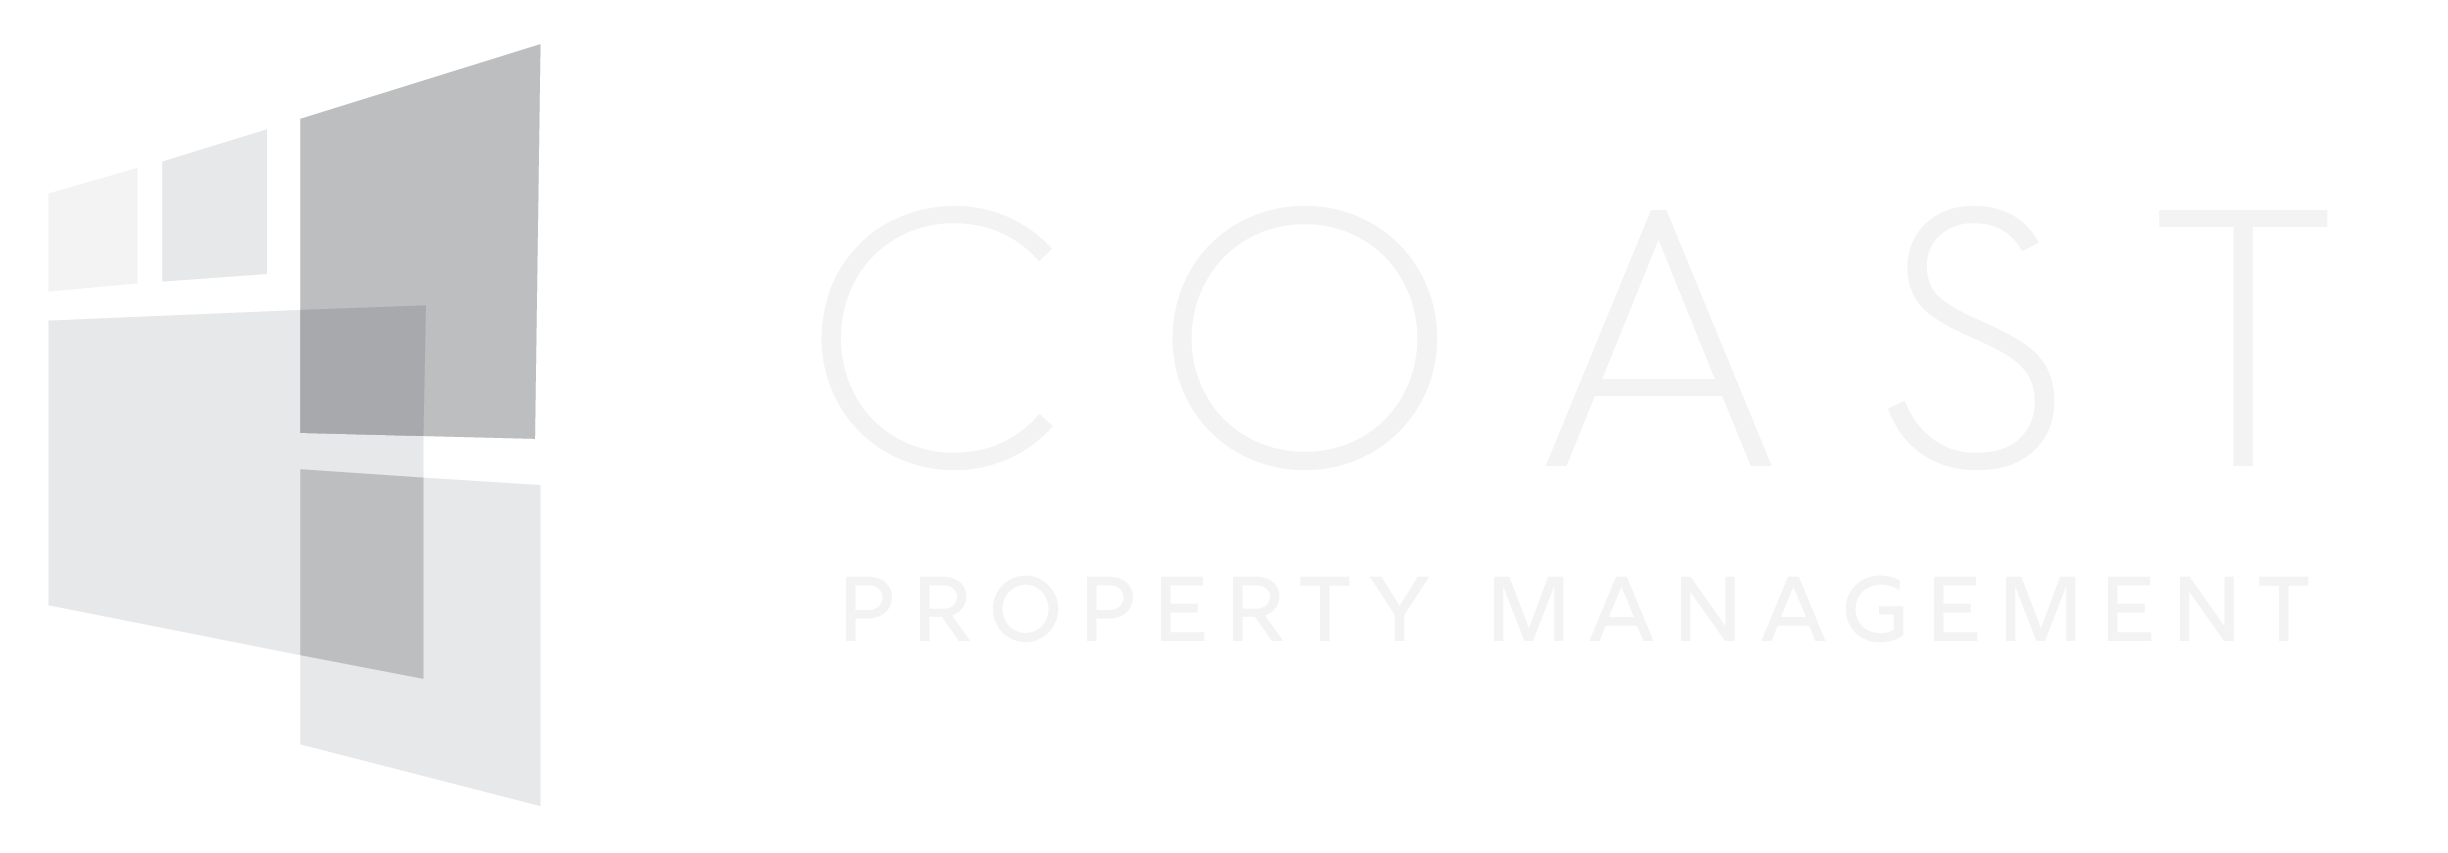 Coast Property Management Logo